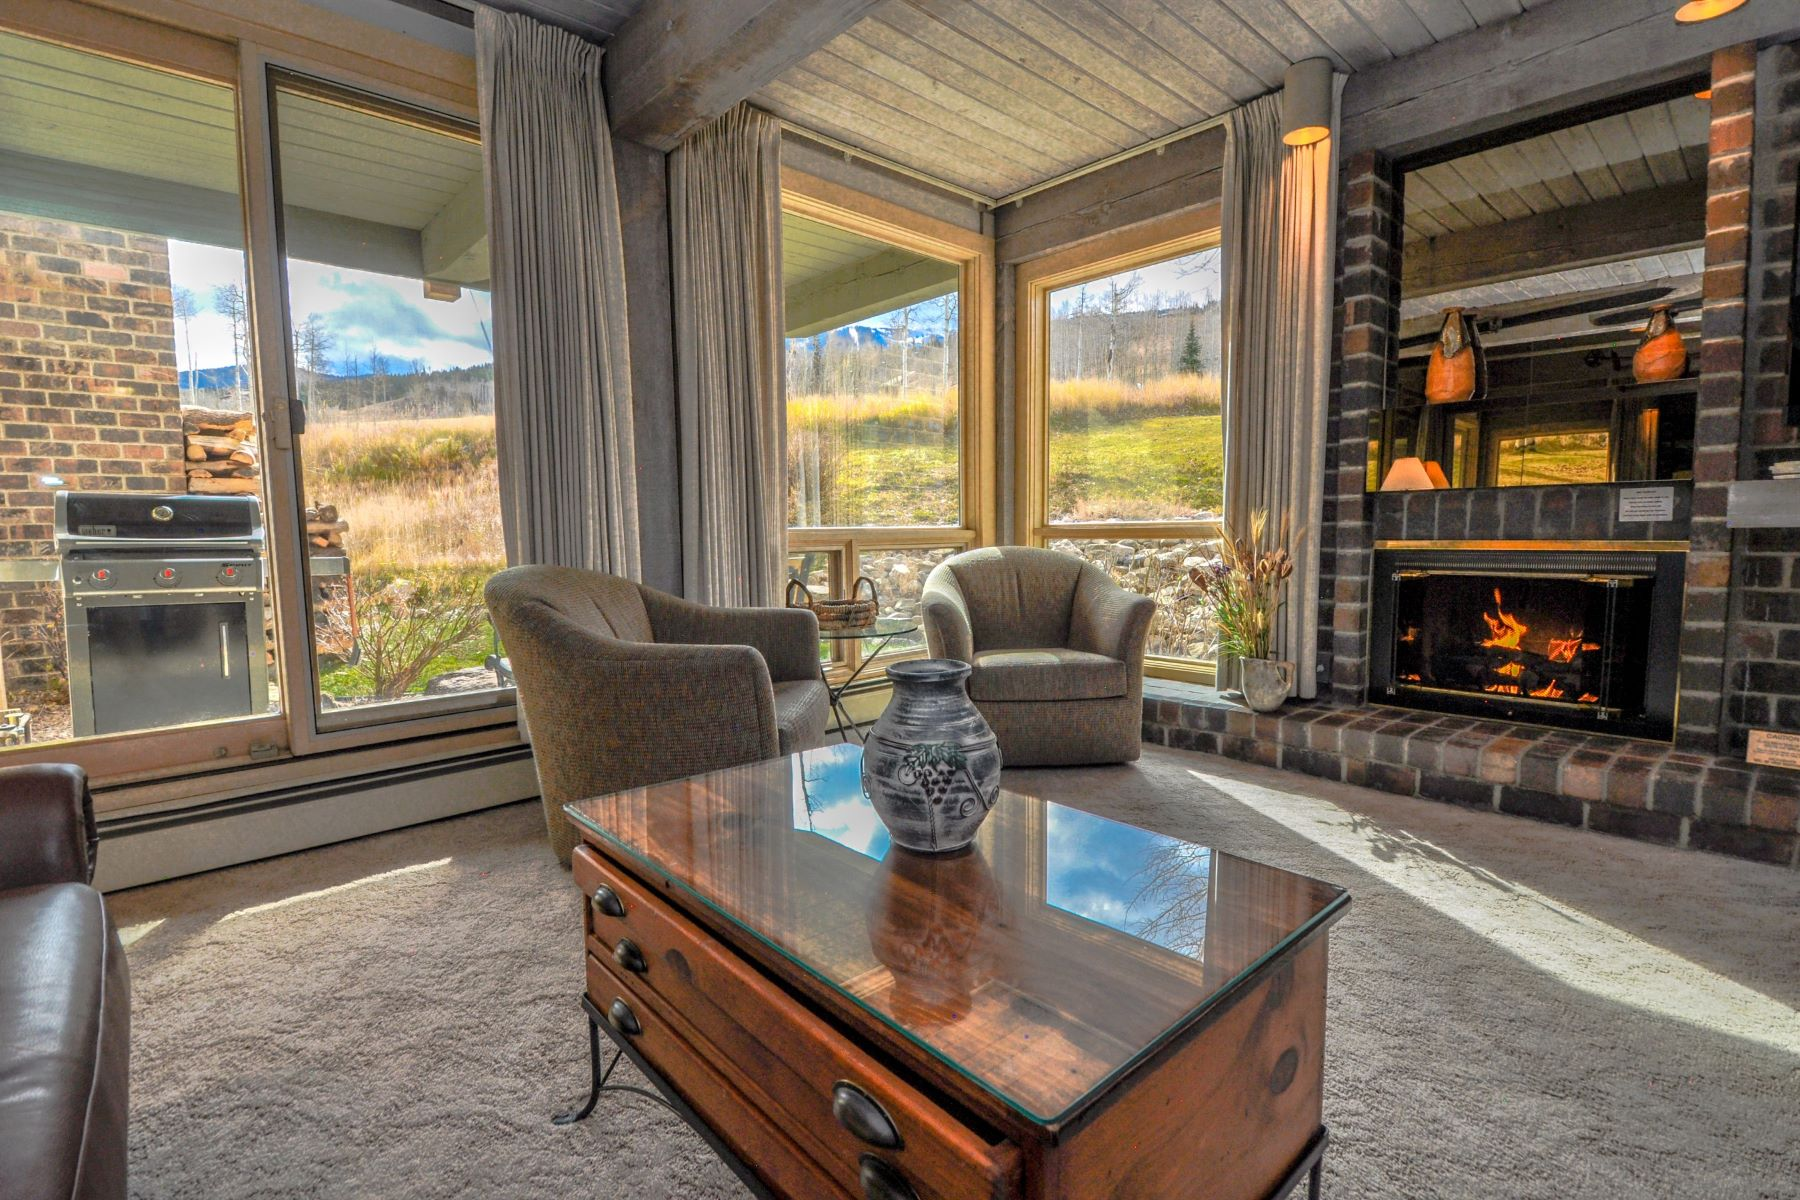 Copropriété pour l Vente à Ski to Your Door 855 Carriage Way, Unit 105 Snowmass Village, Colorado, 81615 États-Unis